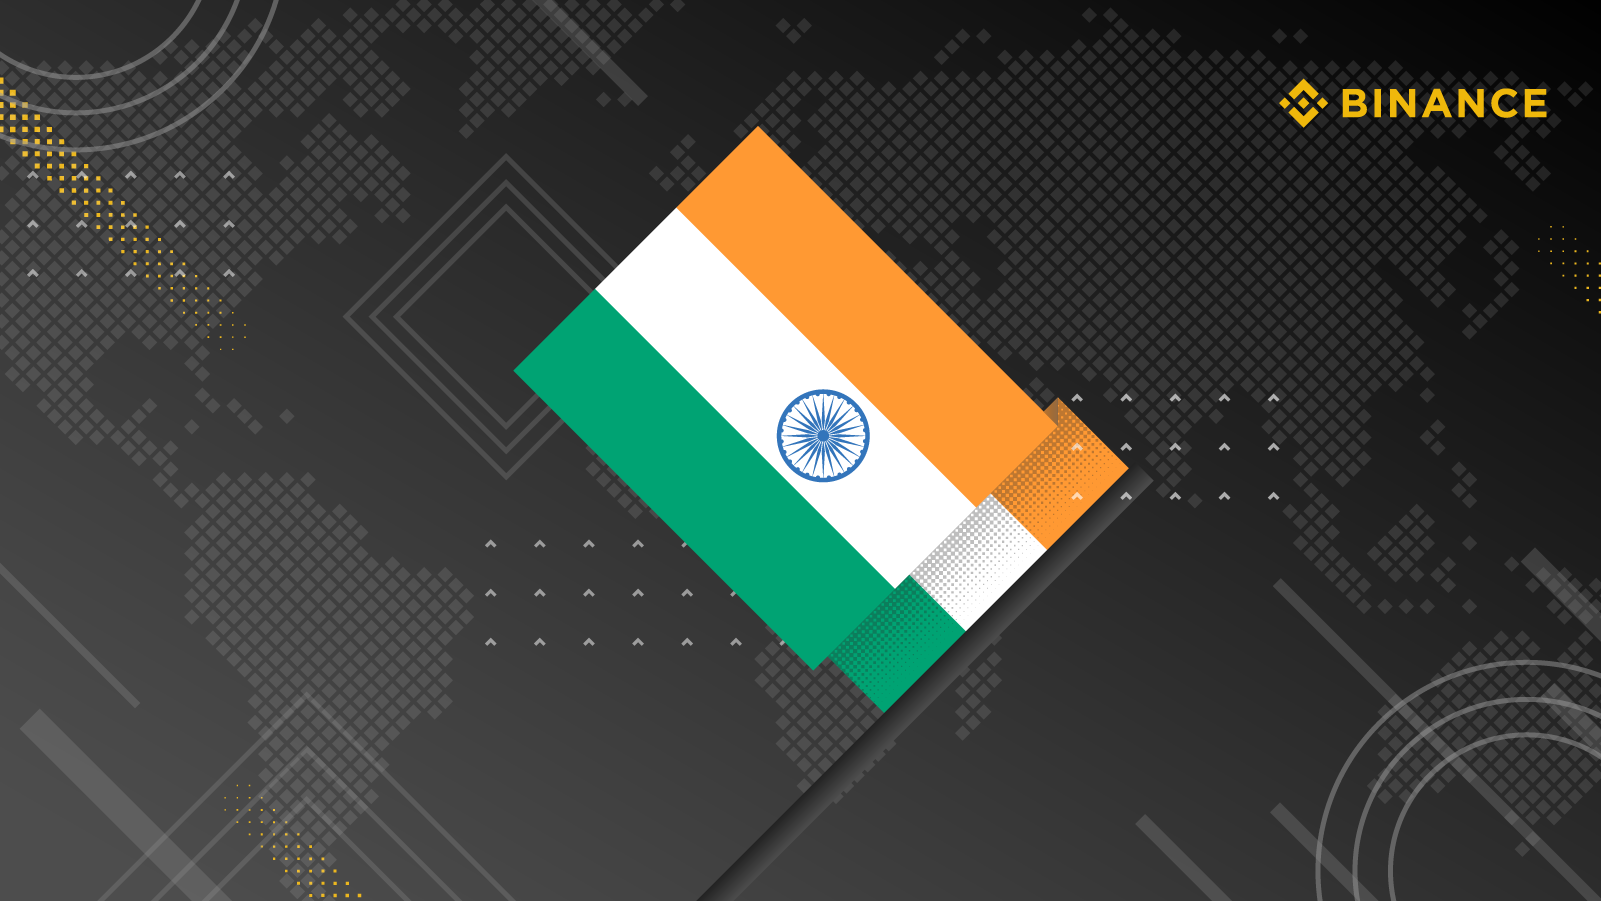 How to Buy Bitcoin in India on Binance